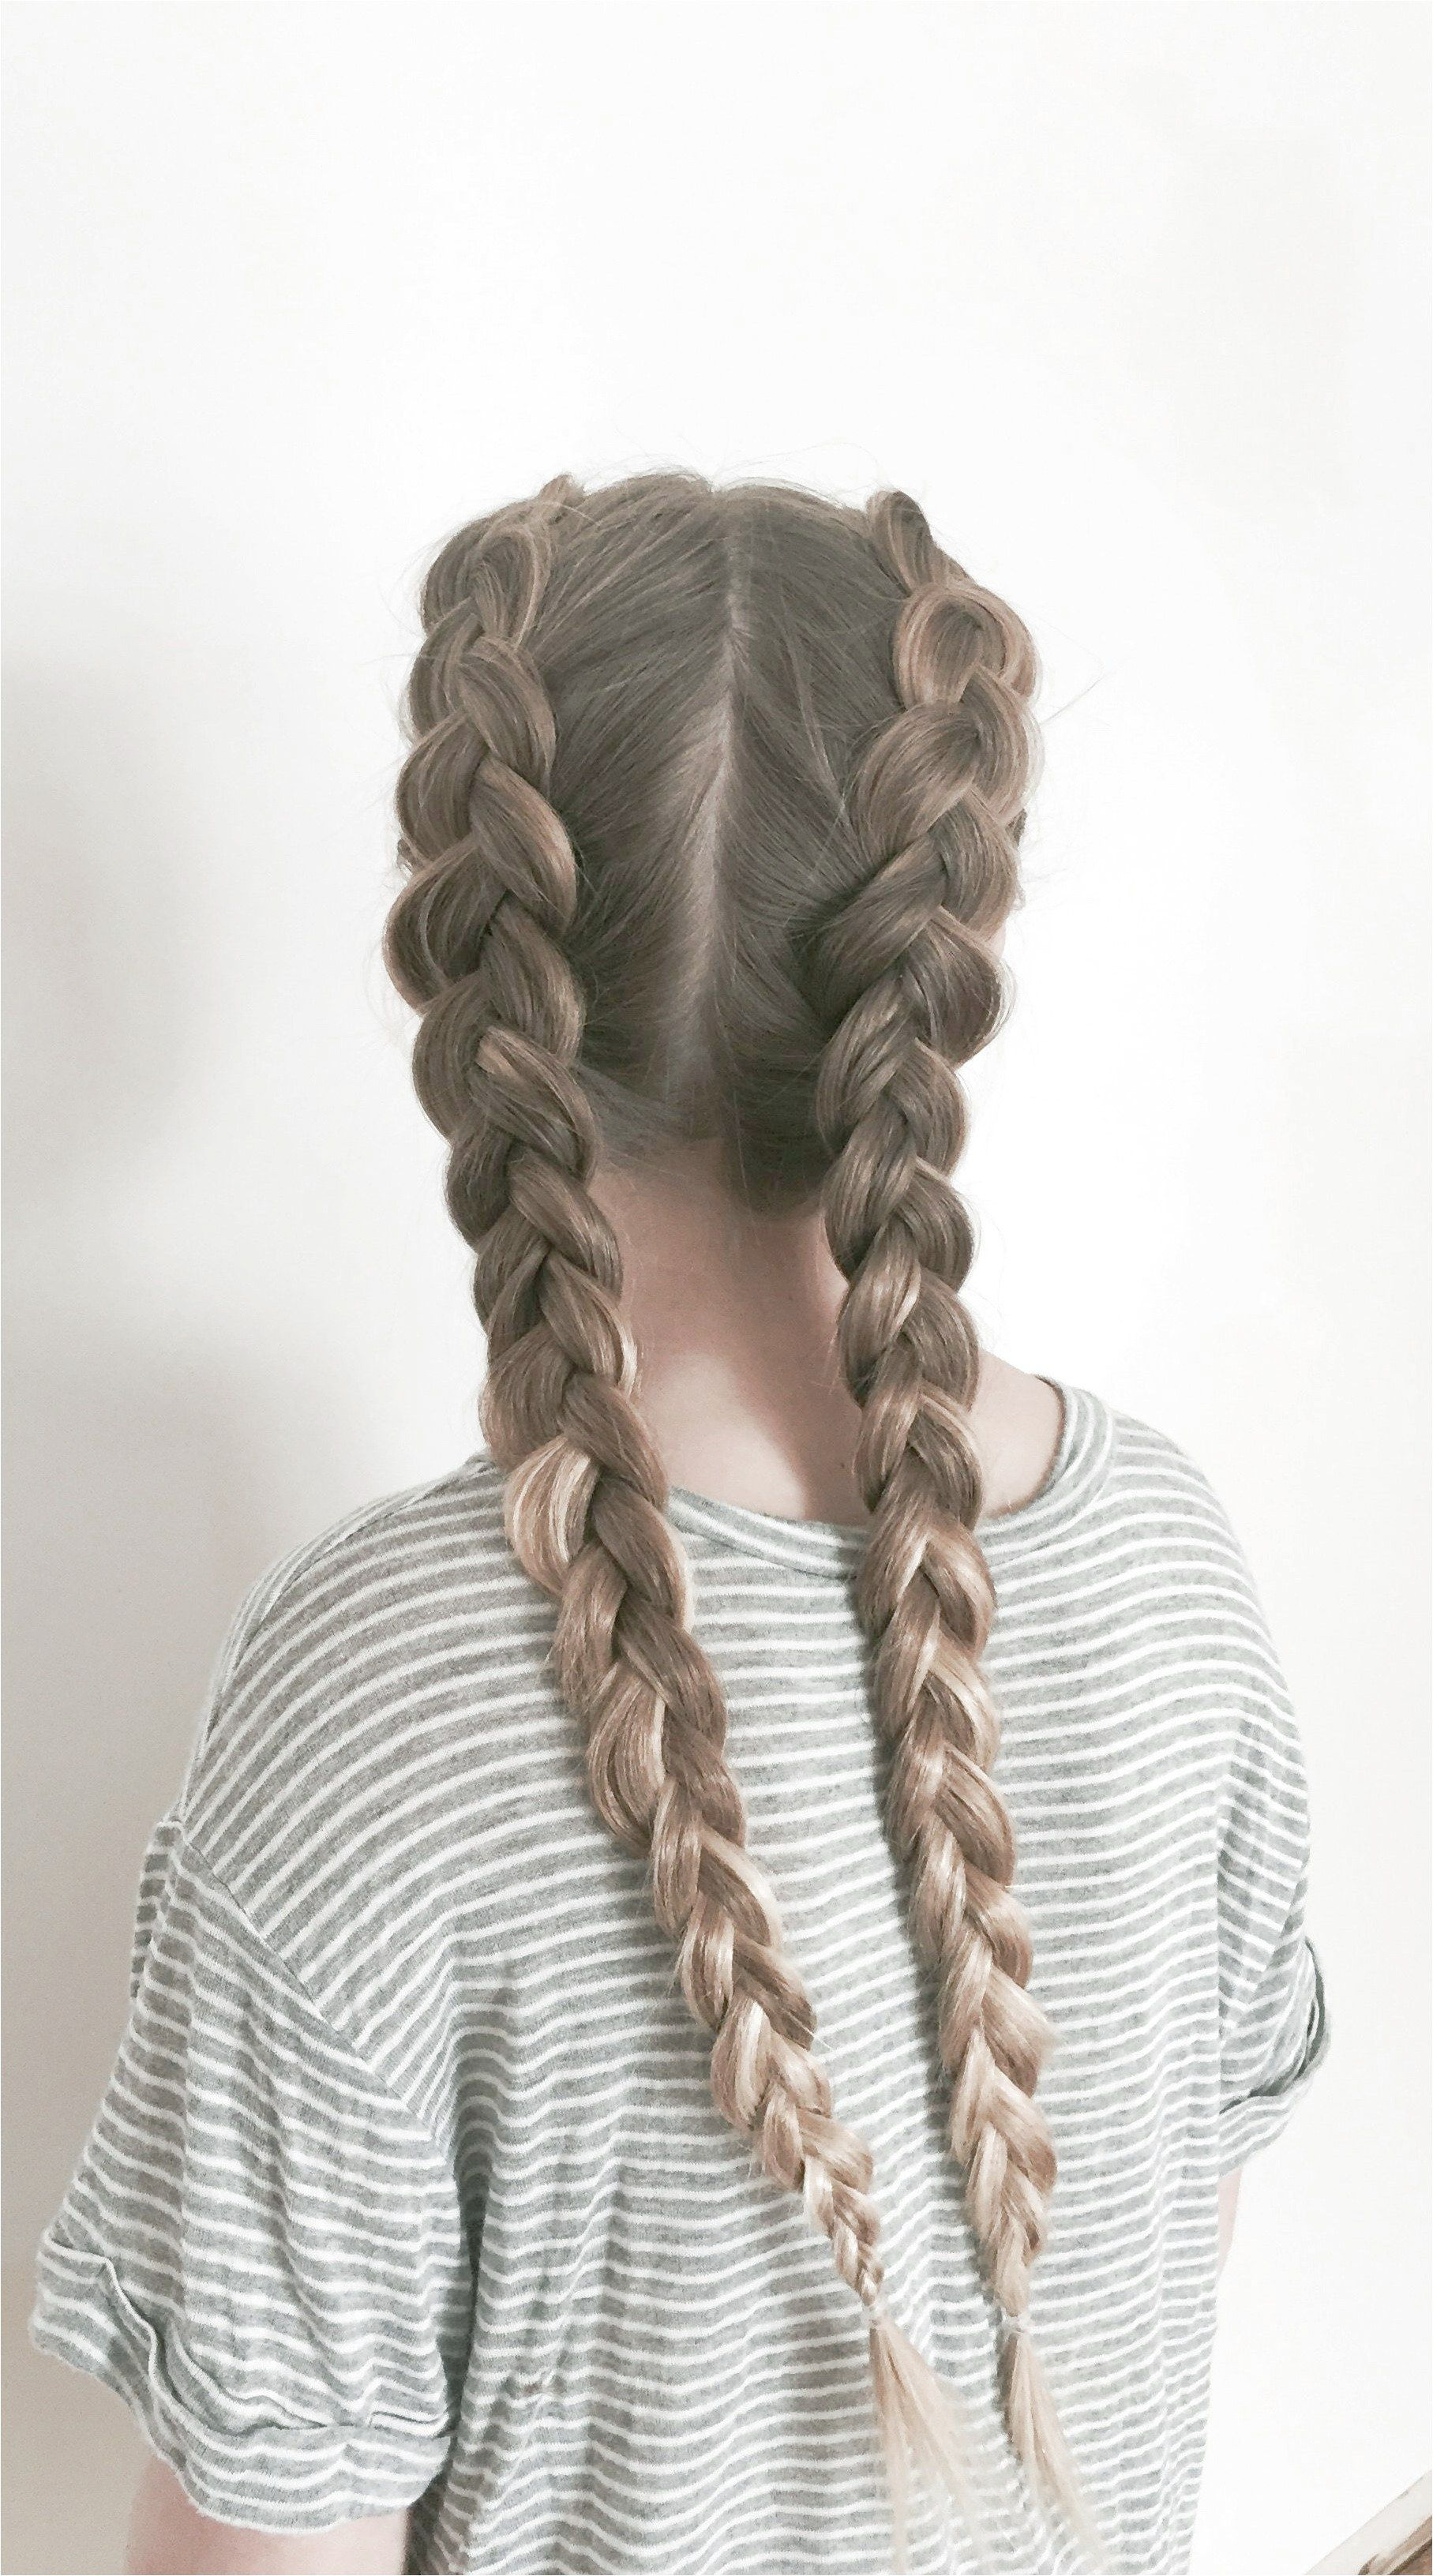 Two Dutch Braids Braidsformediumlengthhair Like What You See Click On The Link To Find Out M Braids For Long Hair French Braid Hairstyles Braids Step By Step